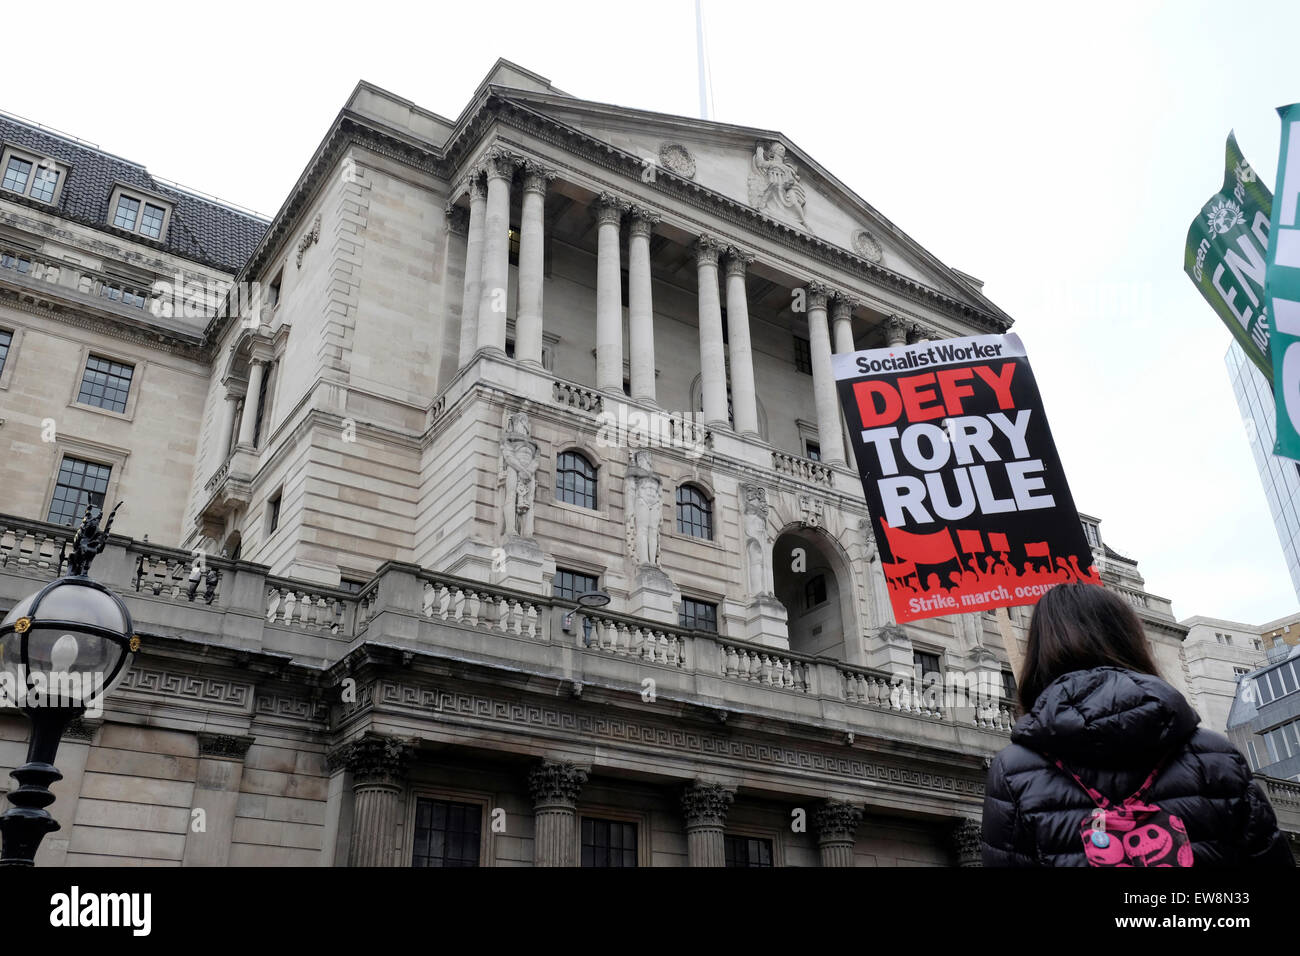 A protester outside the Bank of England holds a placard reading ' defy Tory rule' - Stock Image